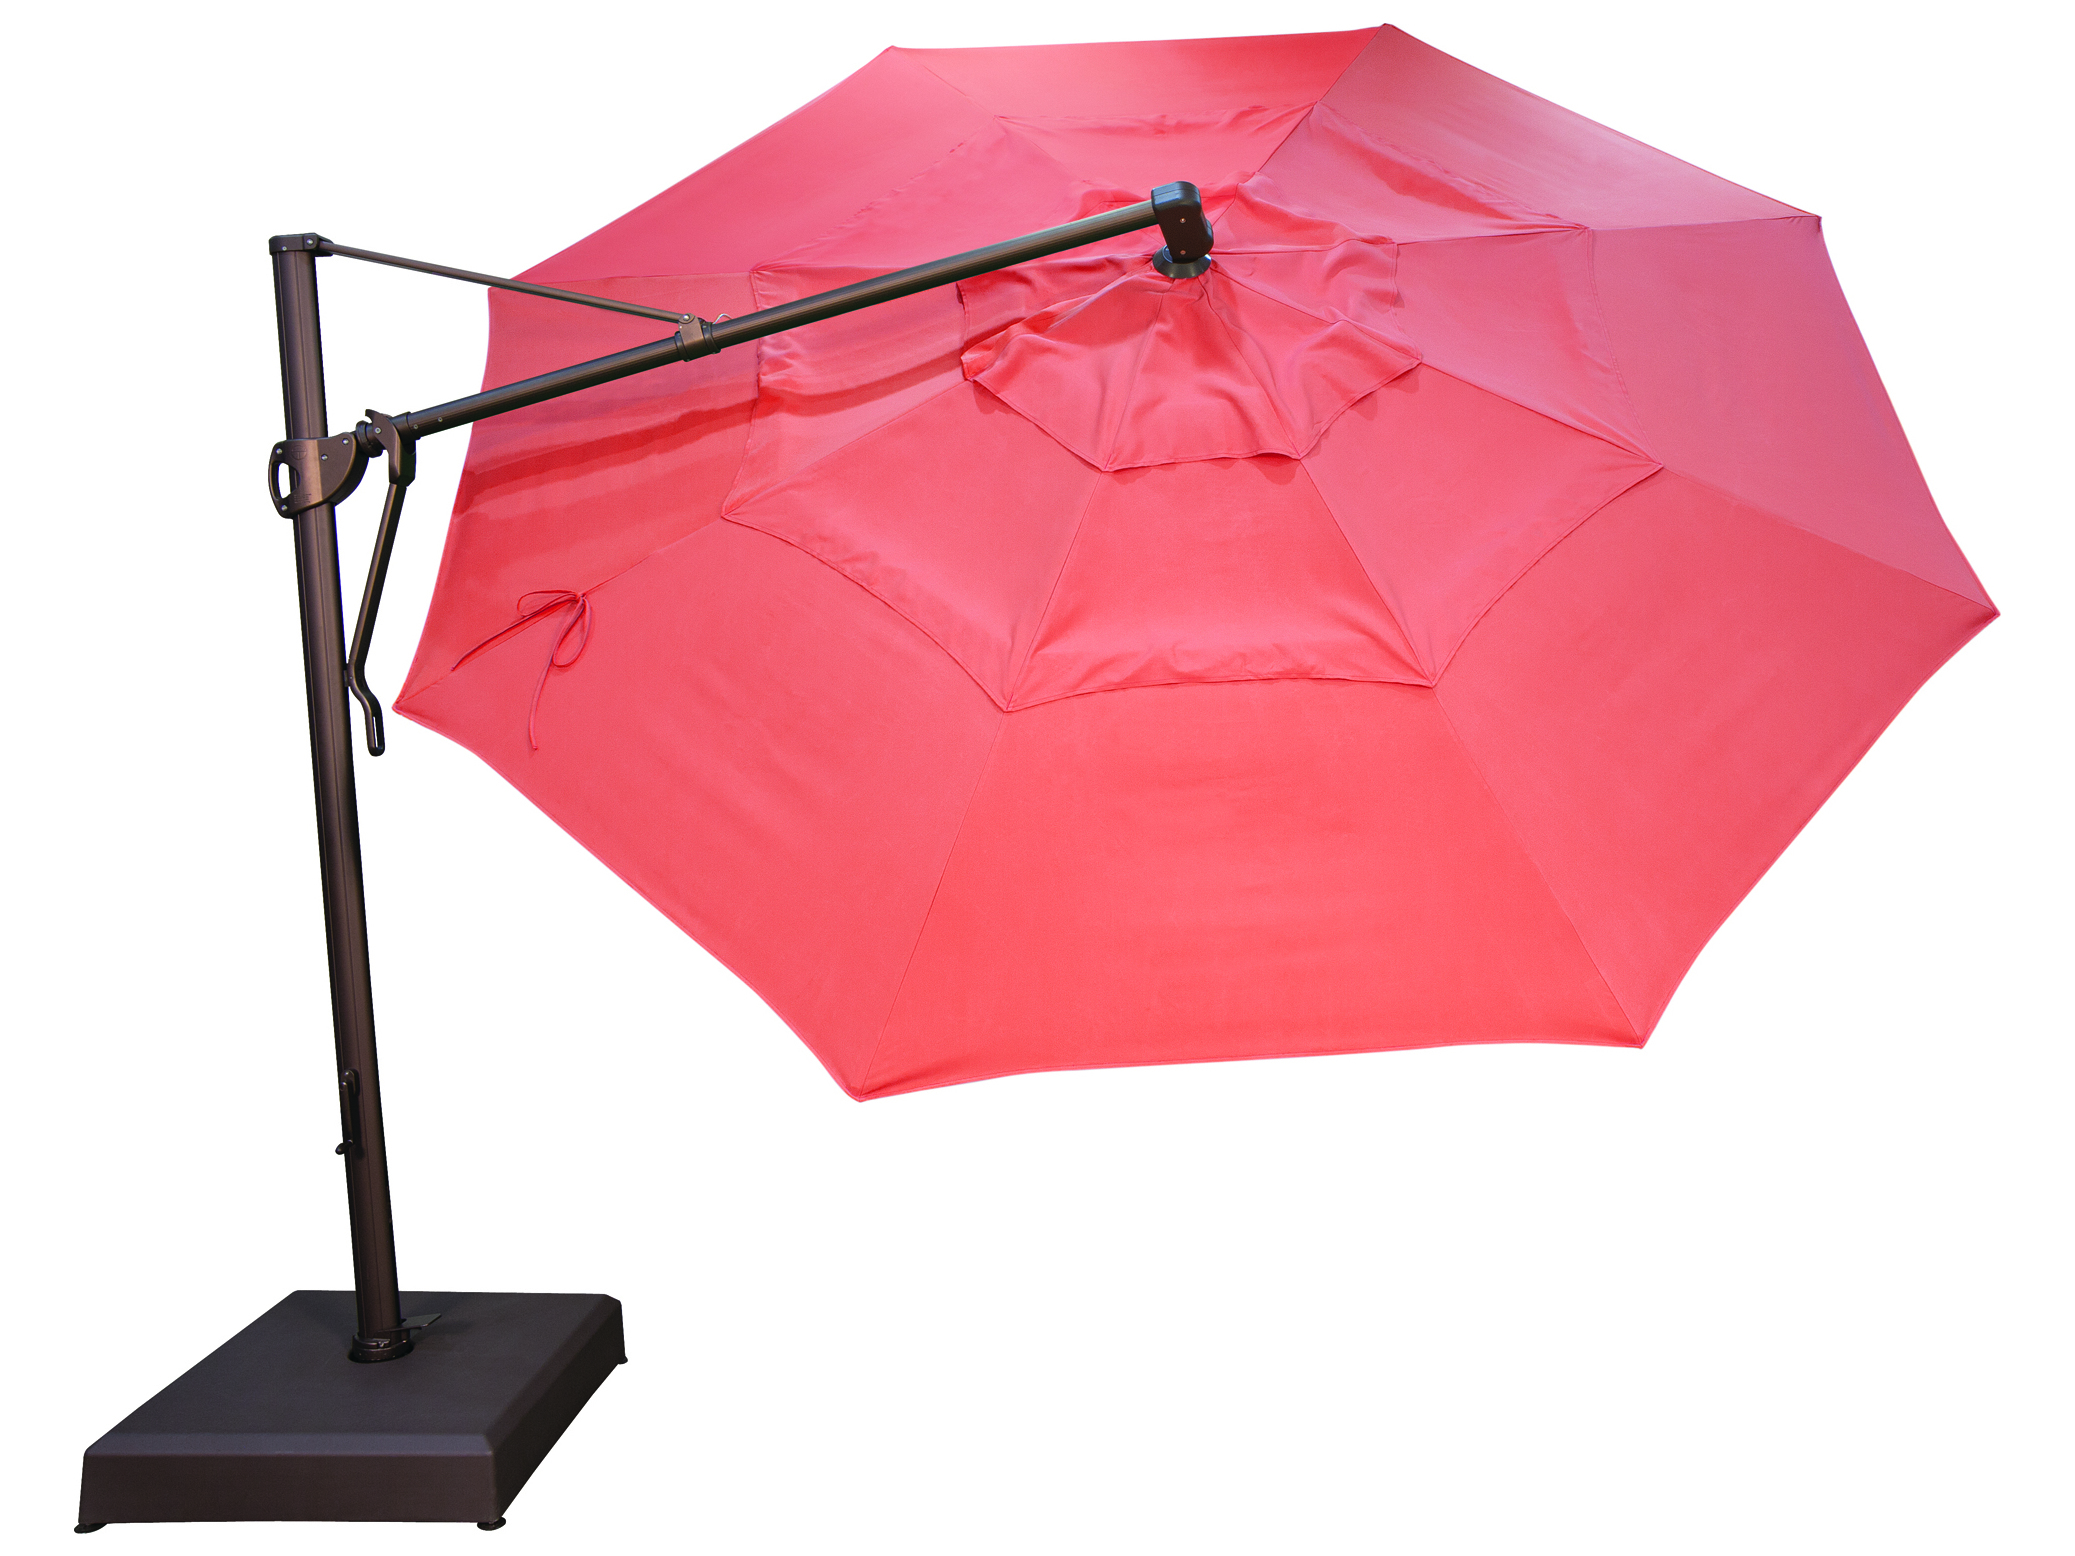 treasure garden cantilever aluminum 13 foot wide crank lift tilt lock umbrella akz13